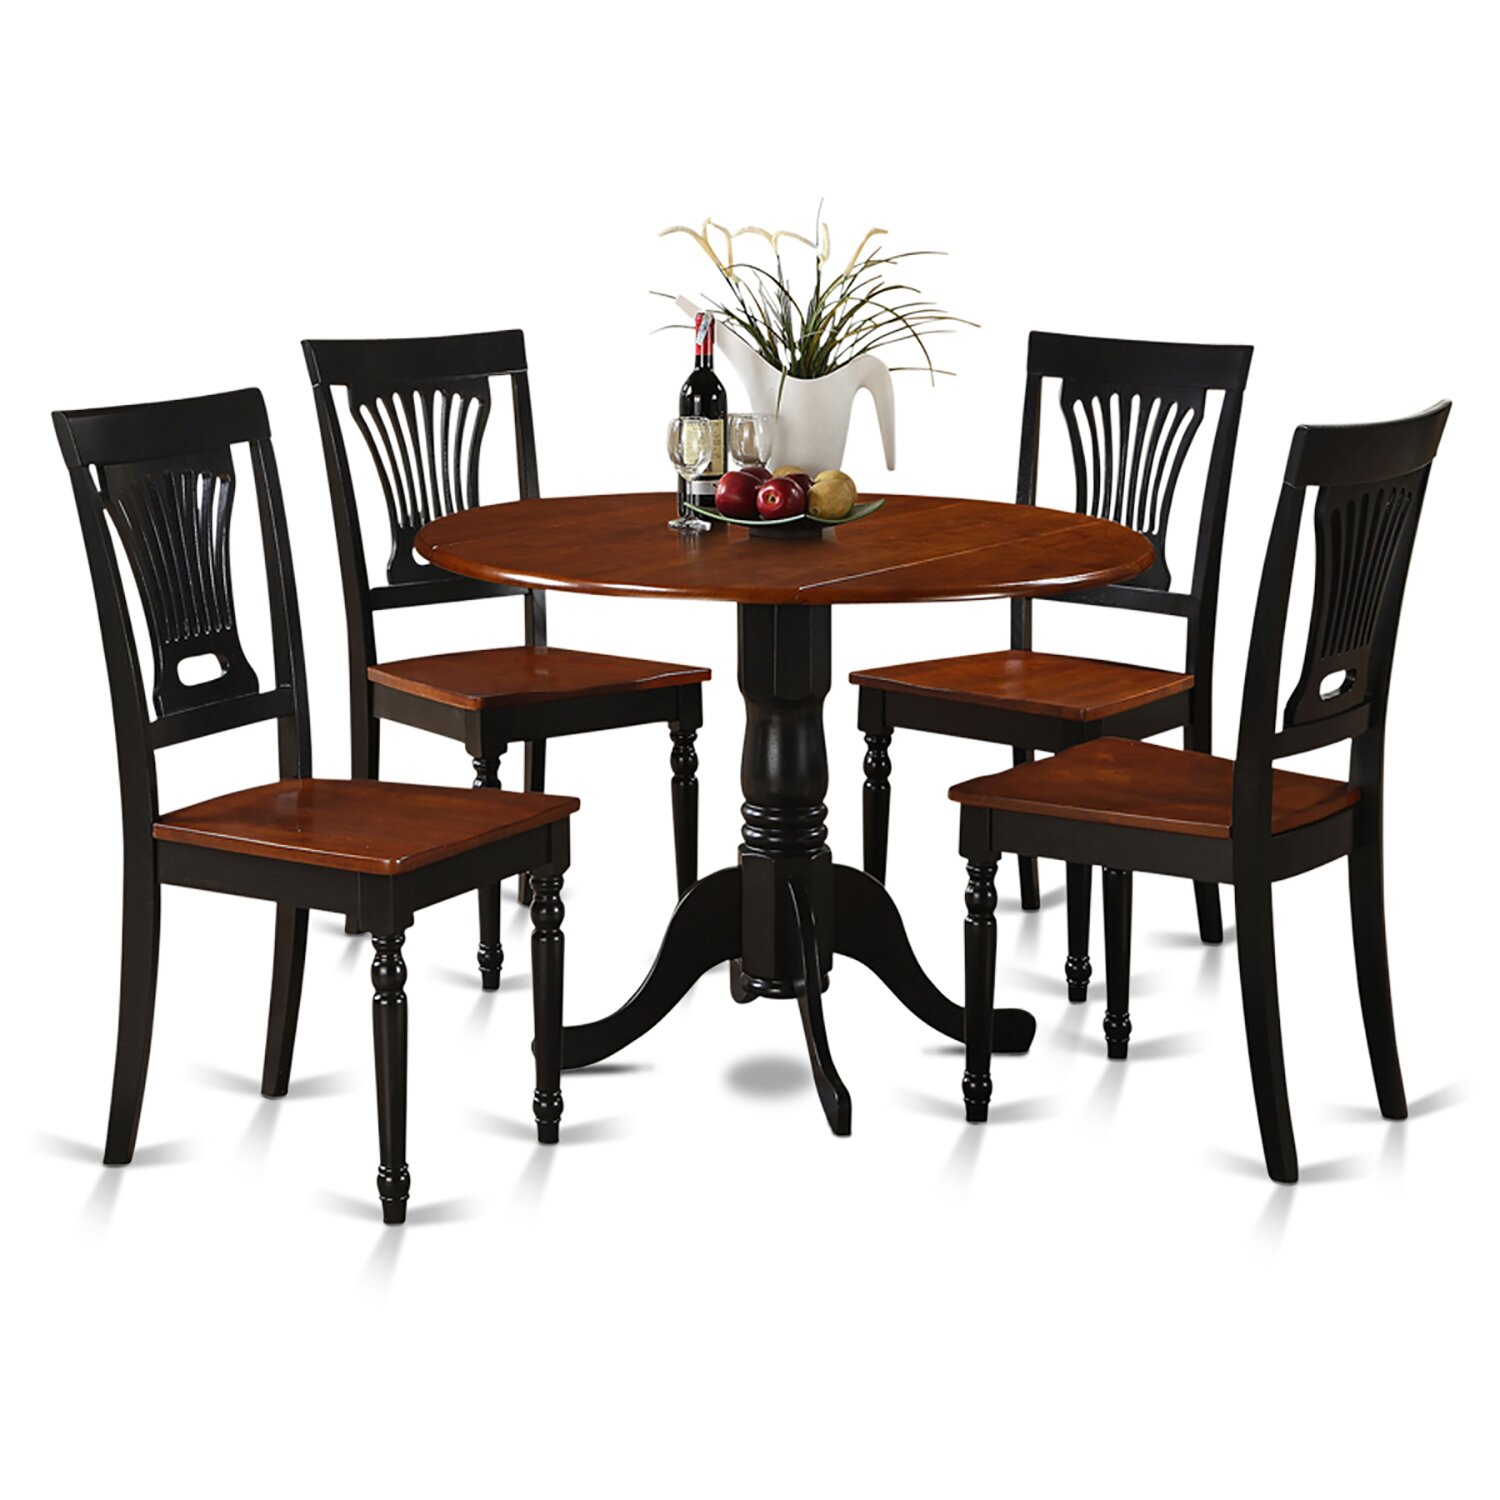 Wooden importers dublin 5 piece dining set reviews wayfair for Small dining sets for 4